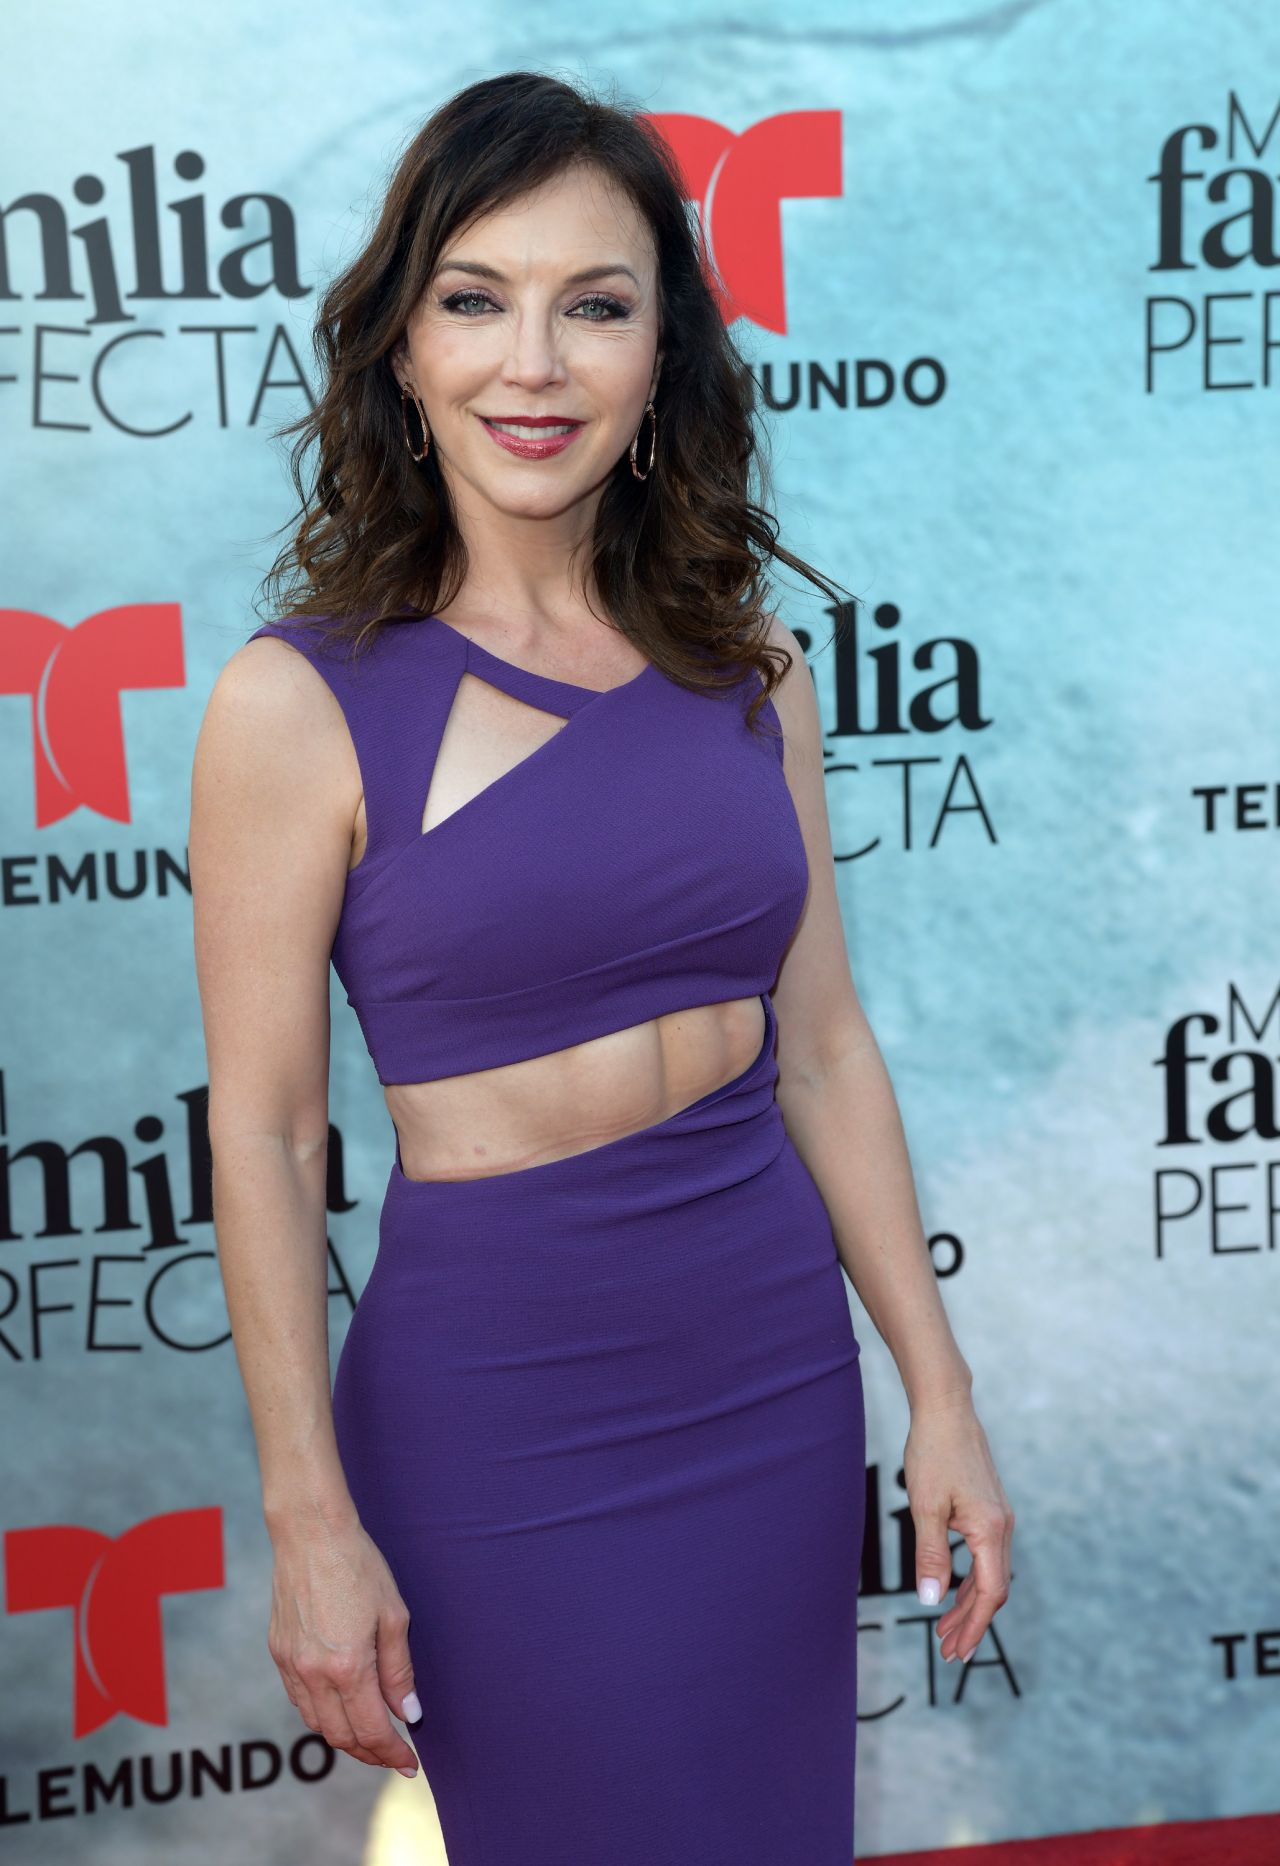 http://celebmafia.com/wp-content/uploads/2018/04/laura-flores-my-perfect-family-tv-show-screening-in-miami-1.jpg